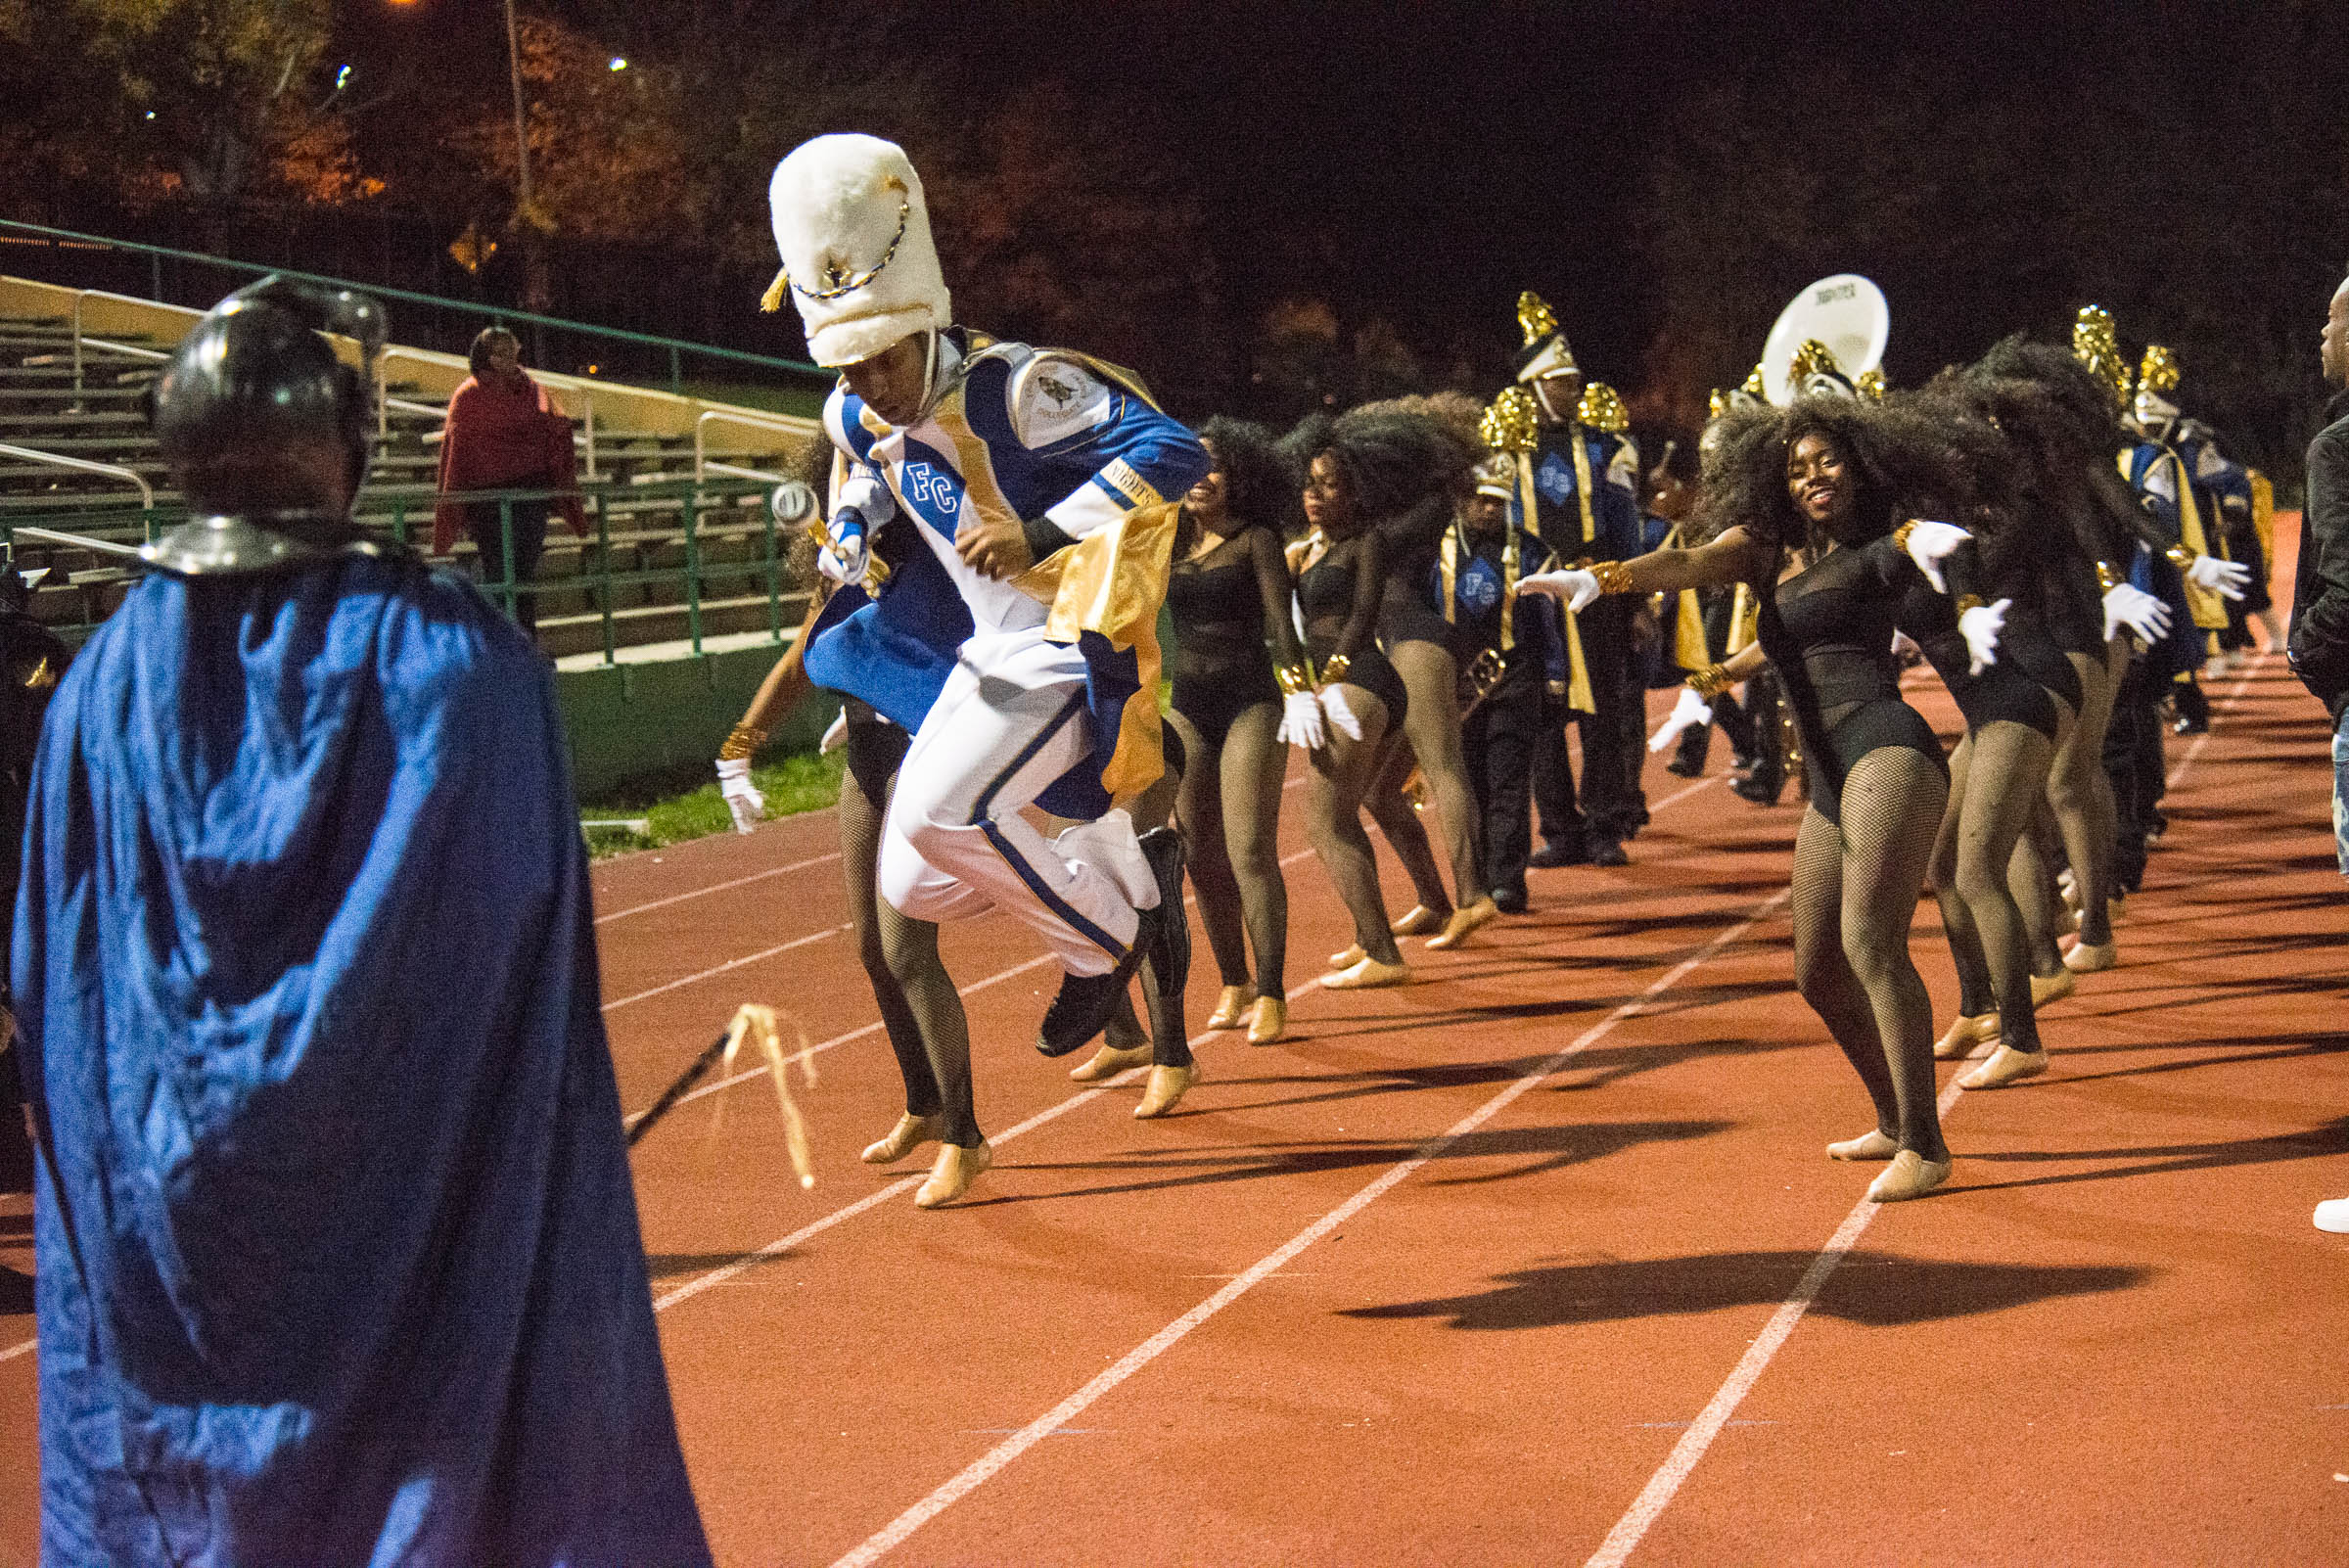 Drum Major, Trevell Brown, leads the band and dancers onto the field for the half-time performance.